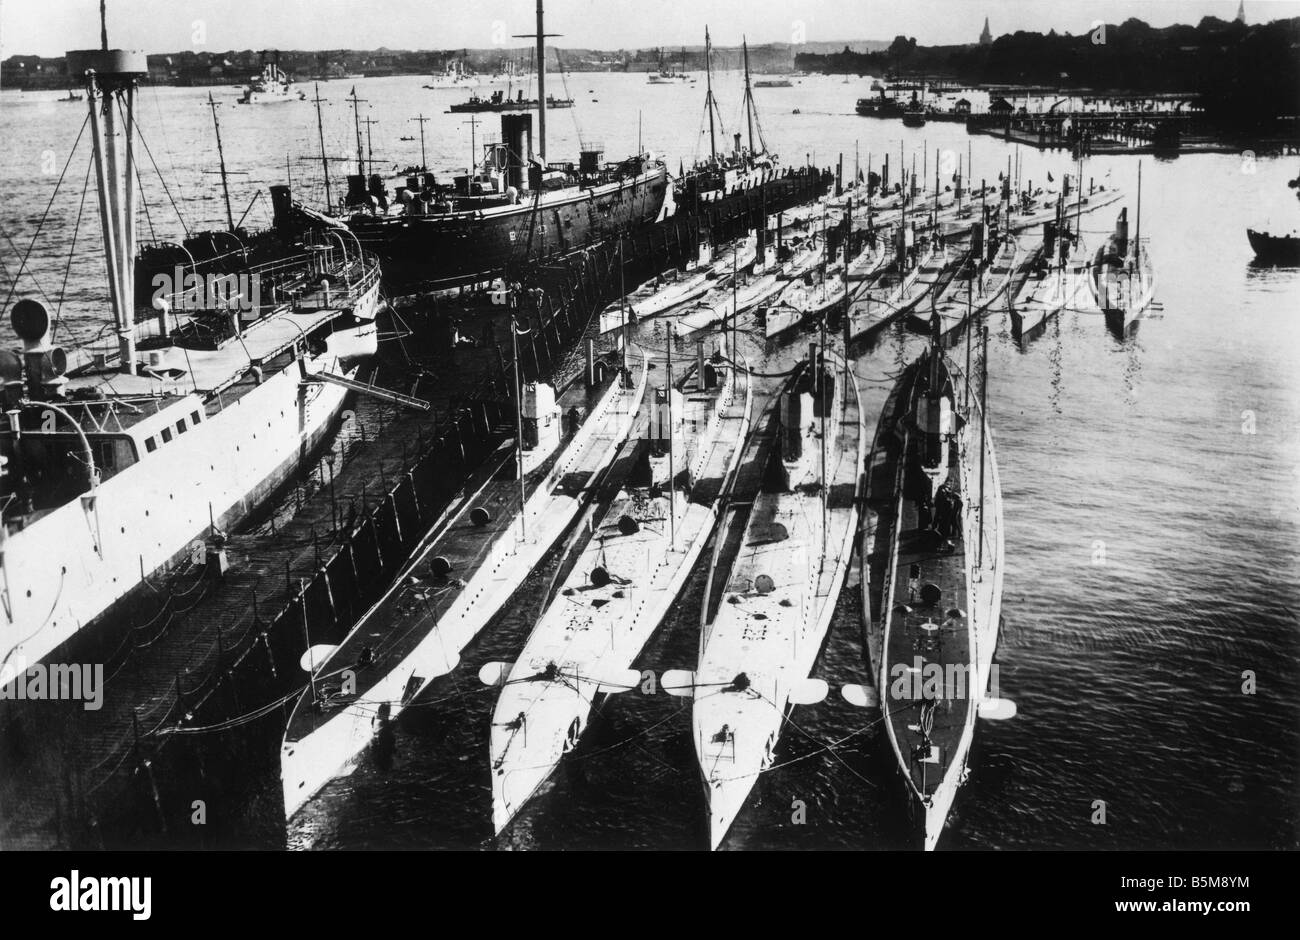 2 G55 M1 1914 12 E German U Boats in harbour WWI 1914 History World War I War at sea Germany s U Boats 1914 Photo - Stock Image